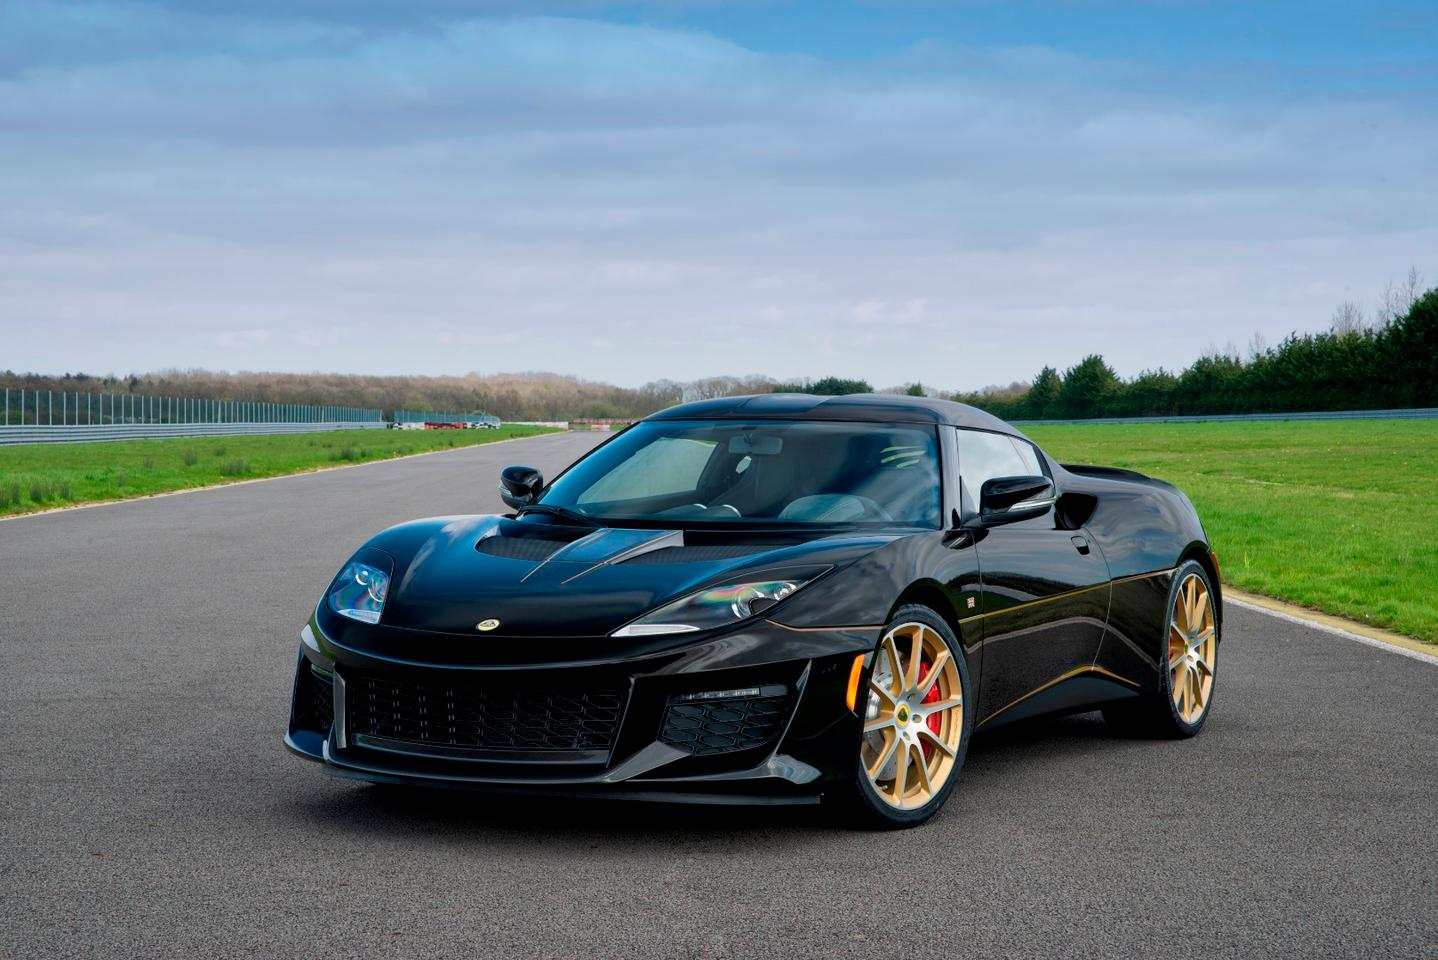 The black-and-gold paint on the Evora 410 harks back to the legendary Lotus F1 cars of the 1970s and '80s